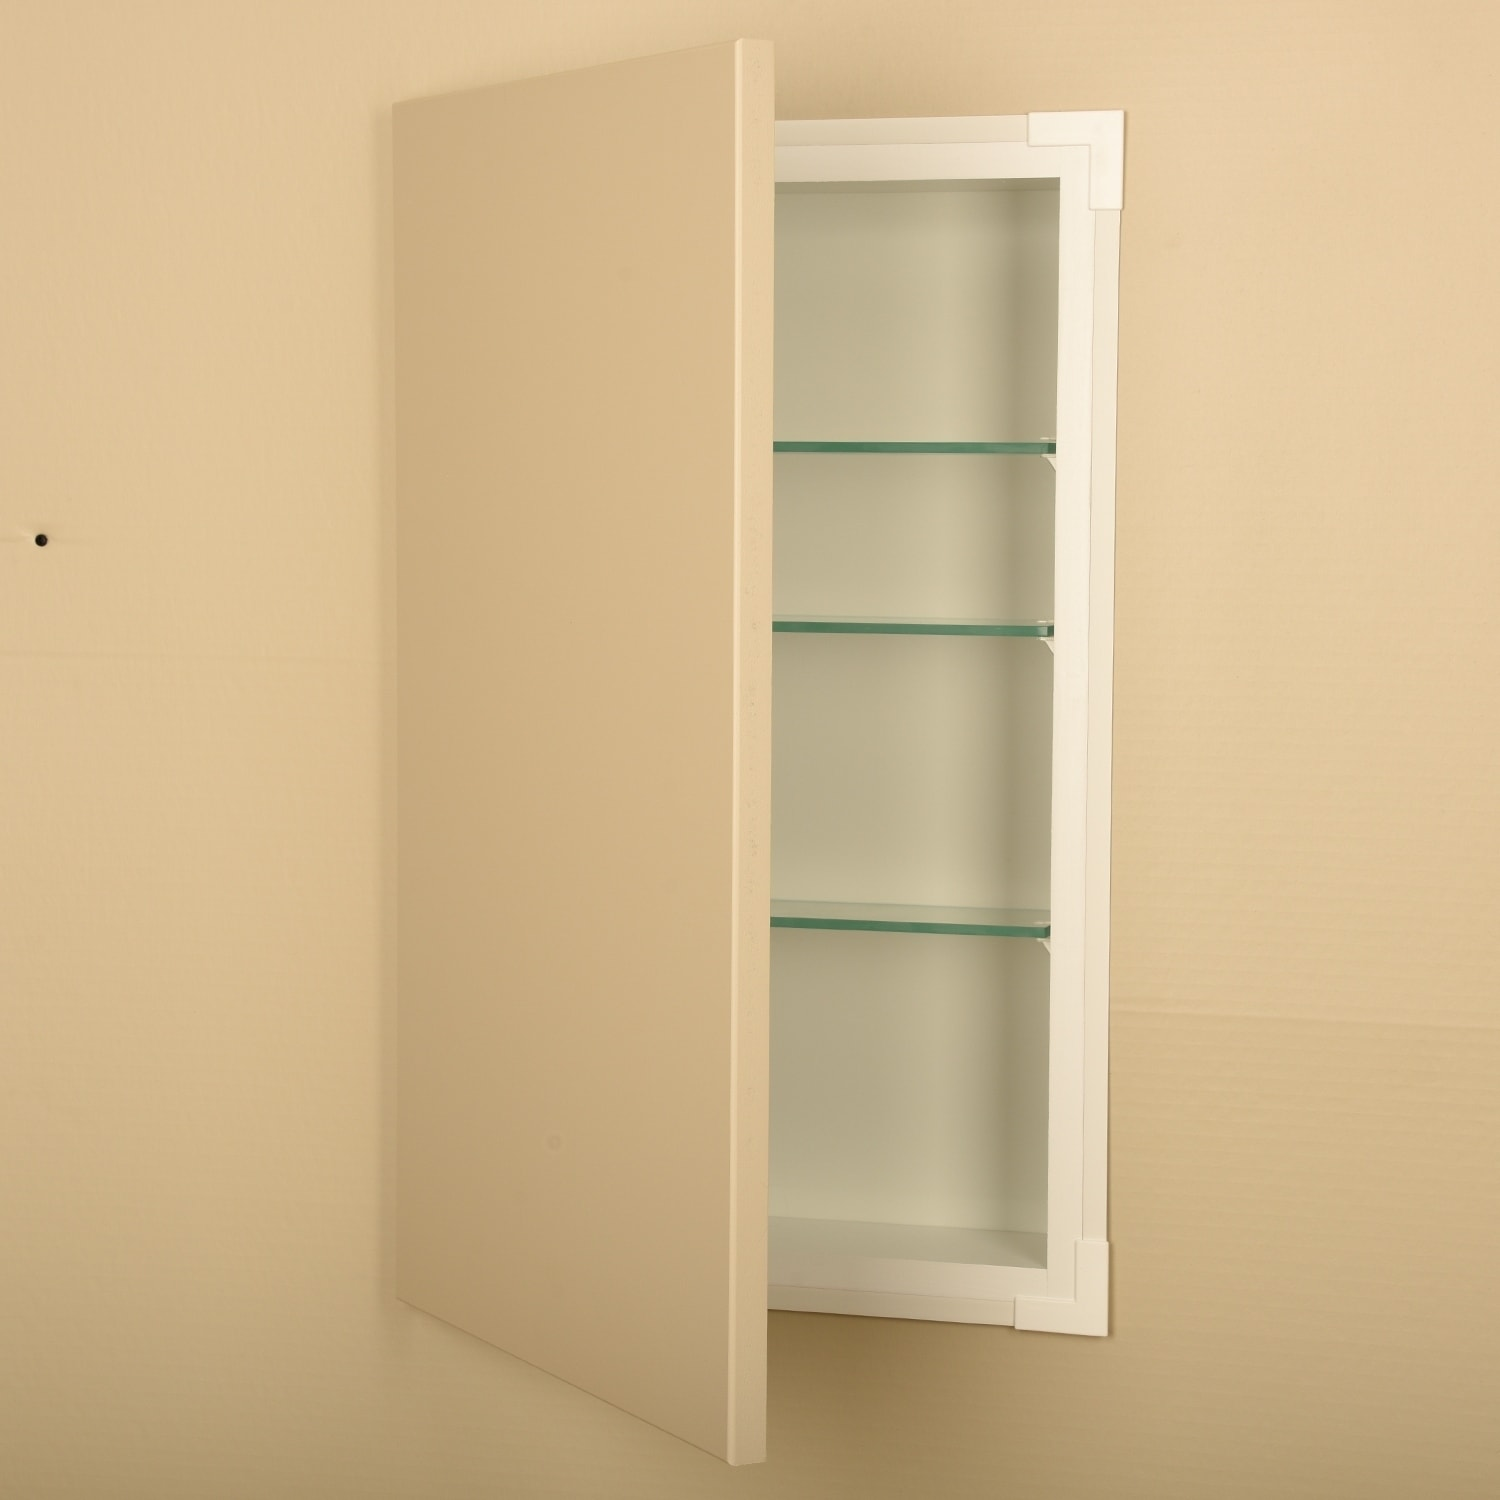 23 Inch Recessed Wall Cabinet 3 5 Deep Free Shipping Today 12604578